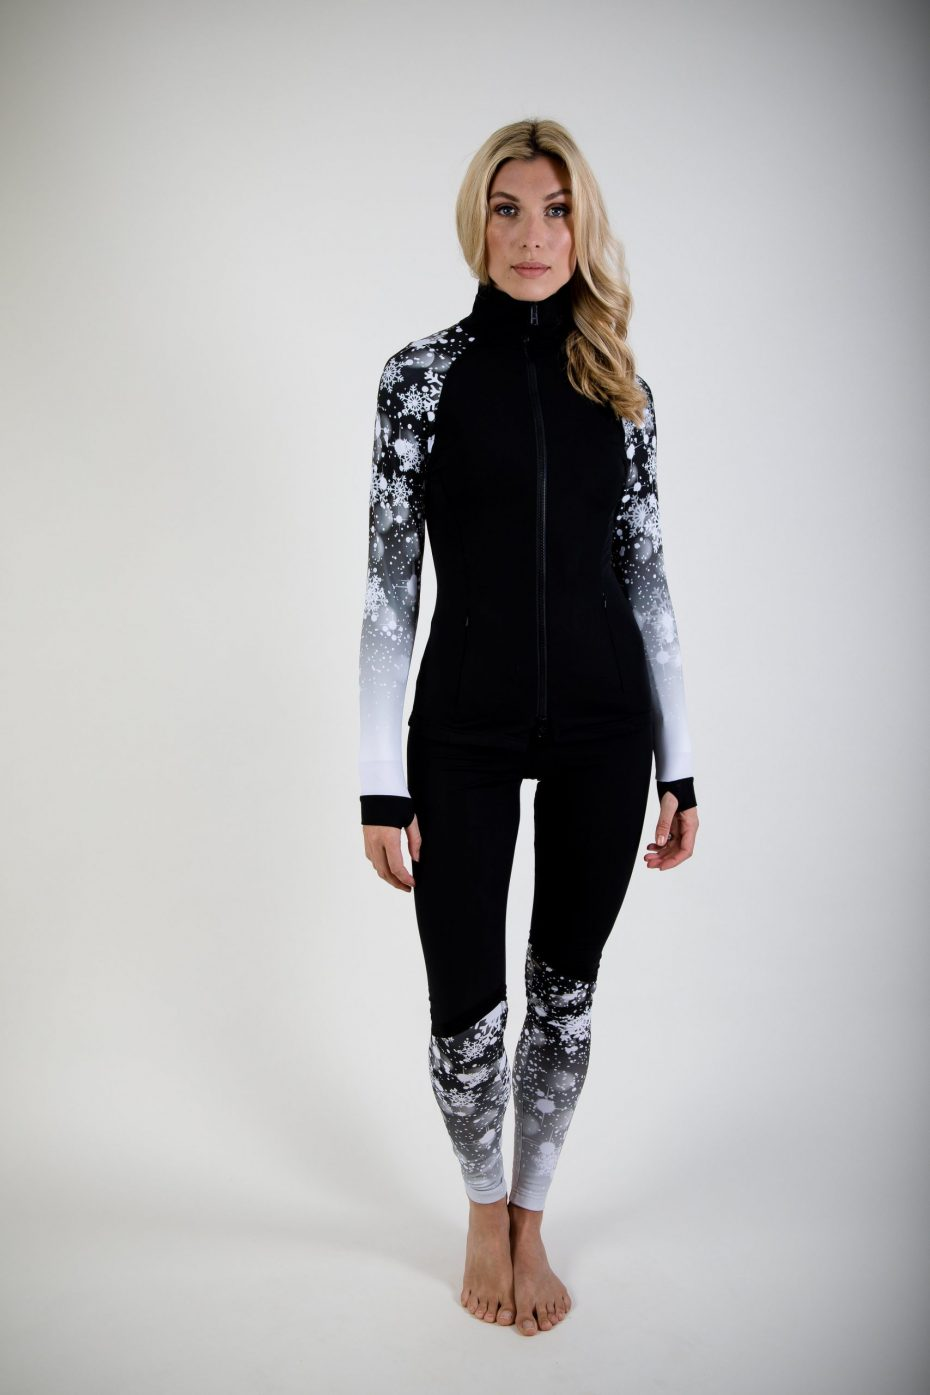 Follie SPORT : Zippee: Sno Flake NEW DELIVERY-683